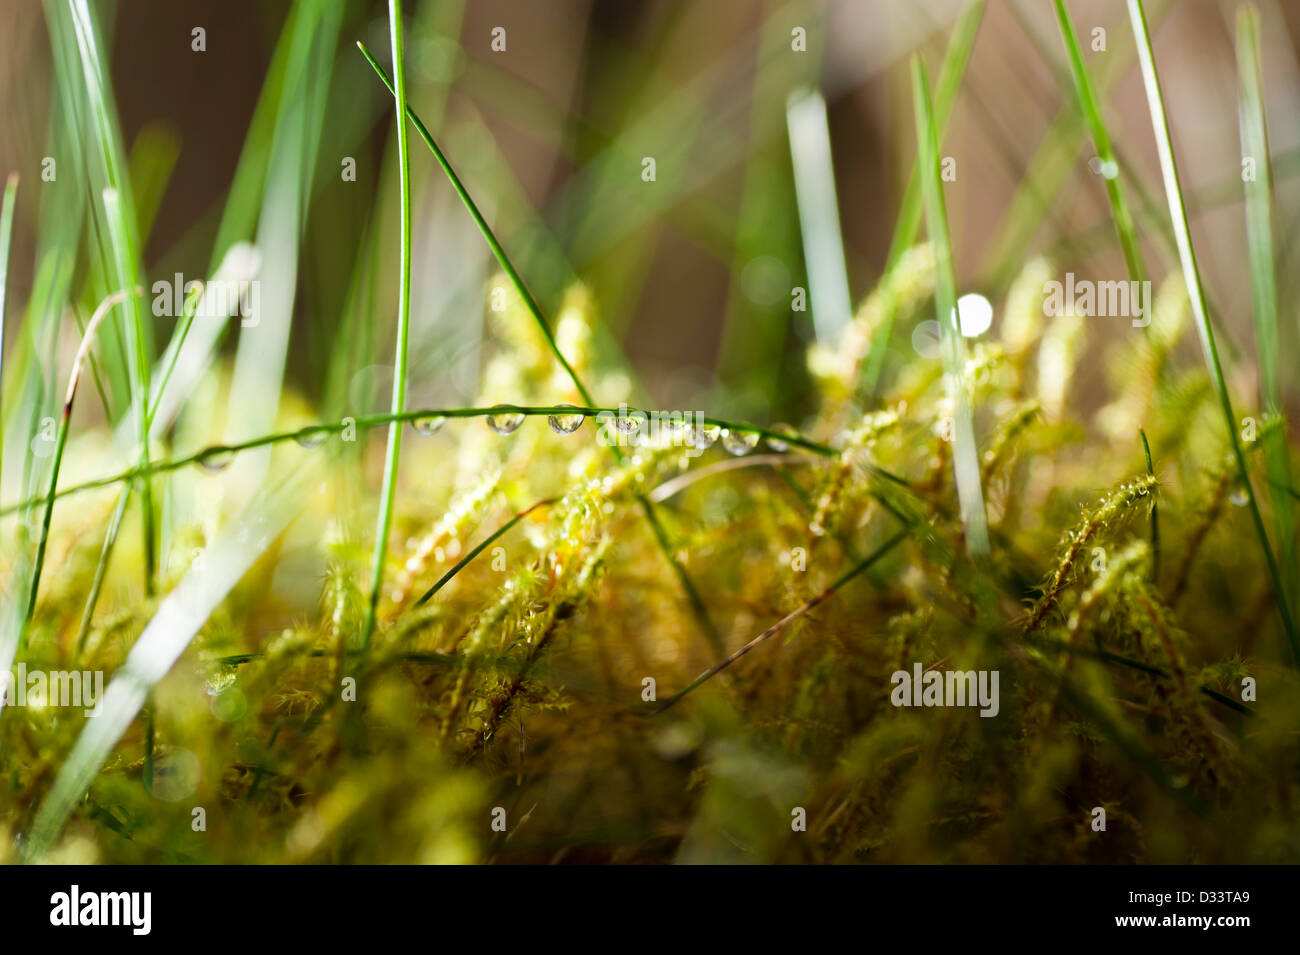 close up macro photography of dew drops droplets of water on blades of grass and green moss vegetation - Stock Image